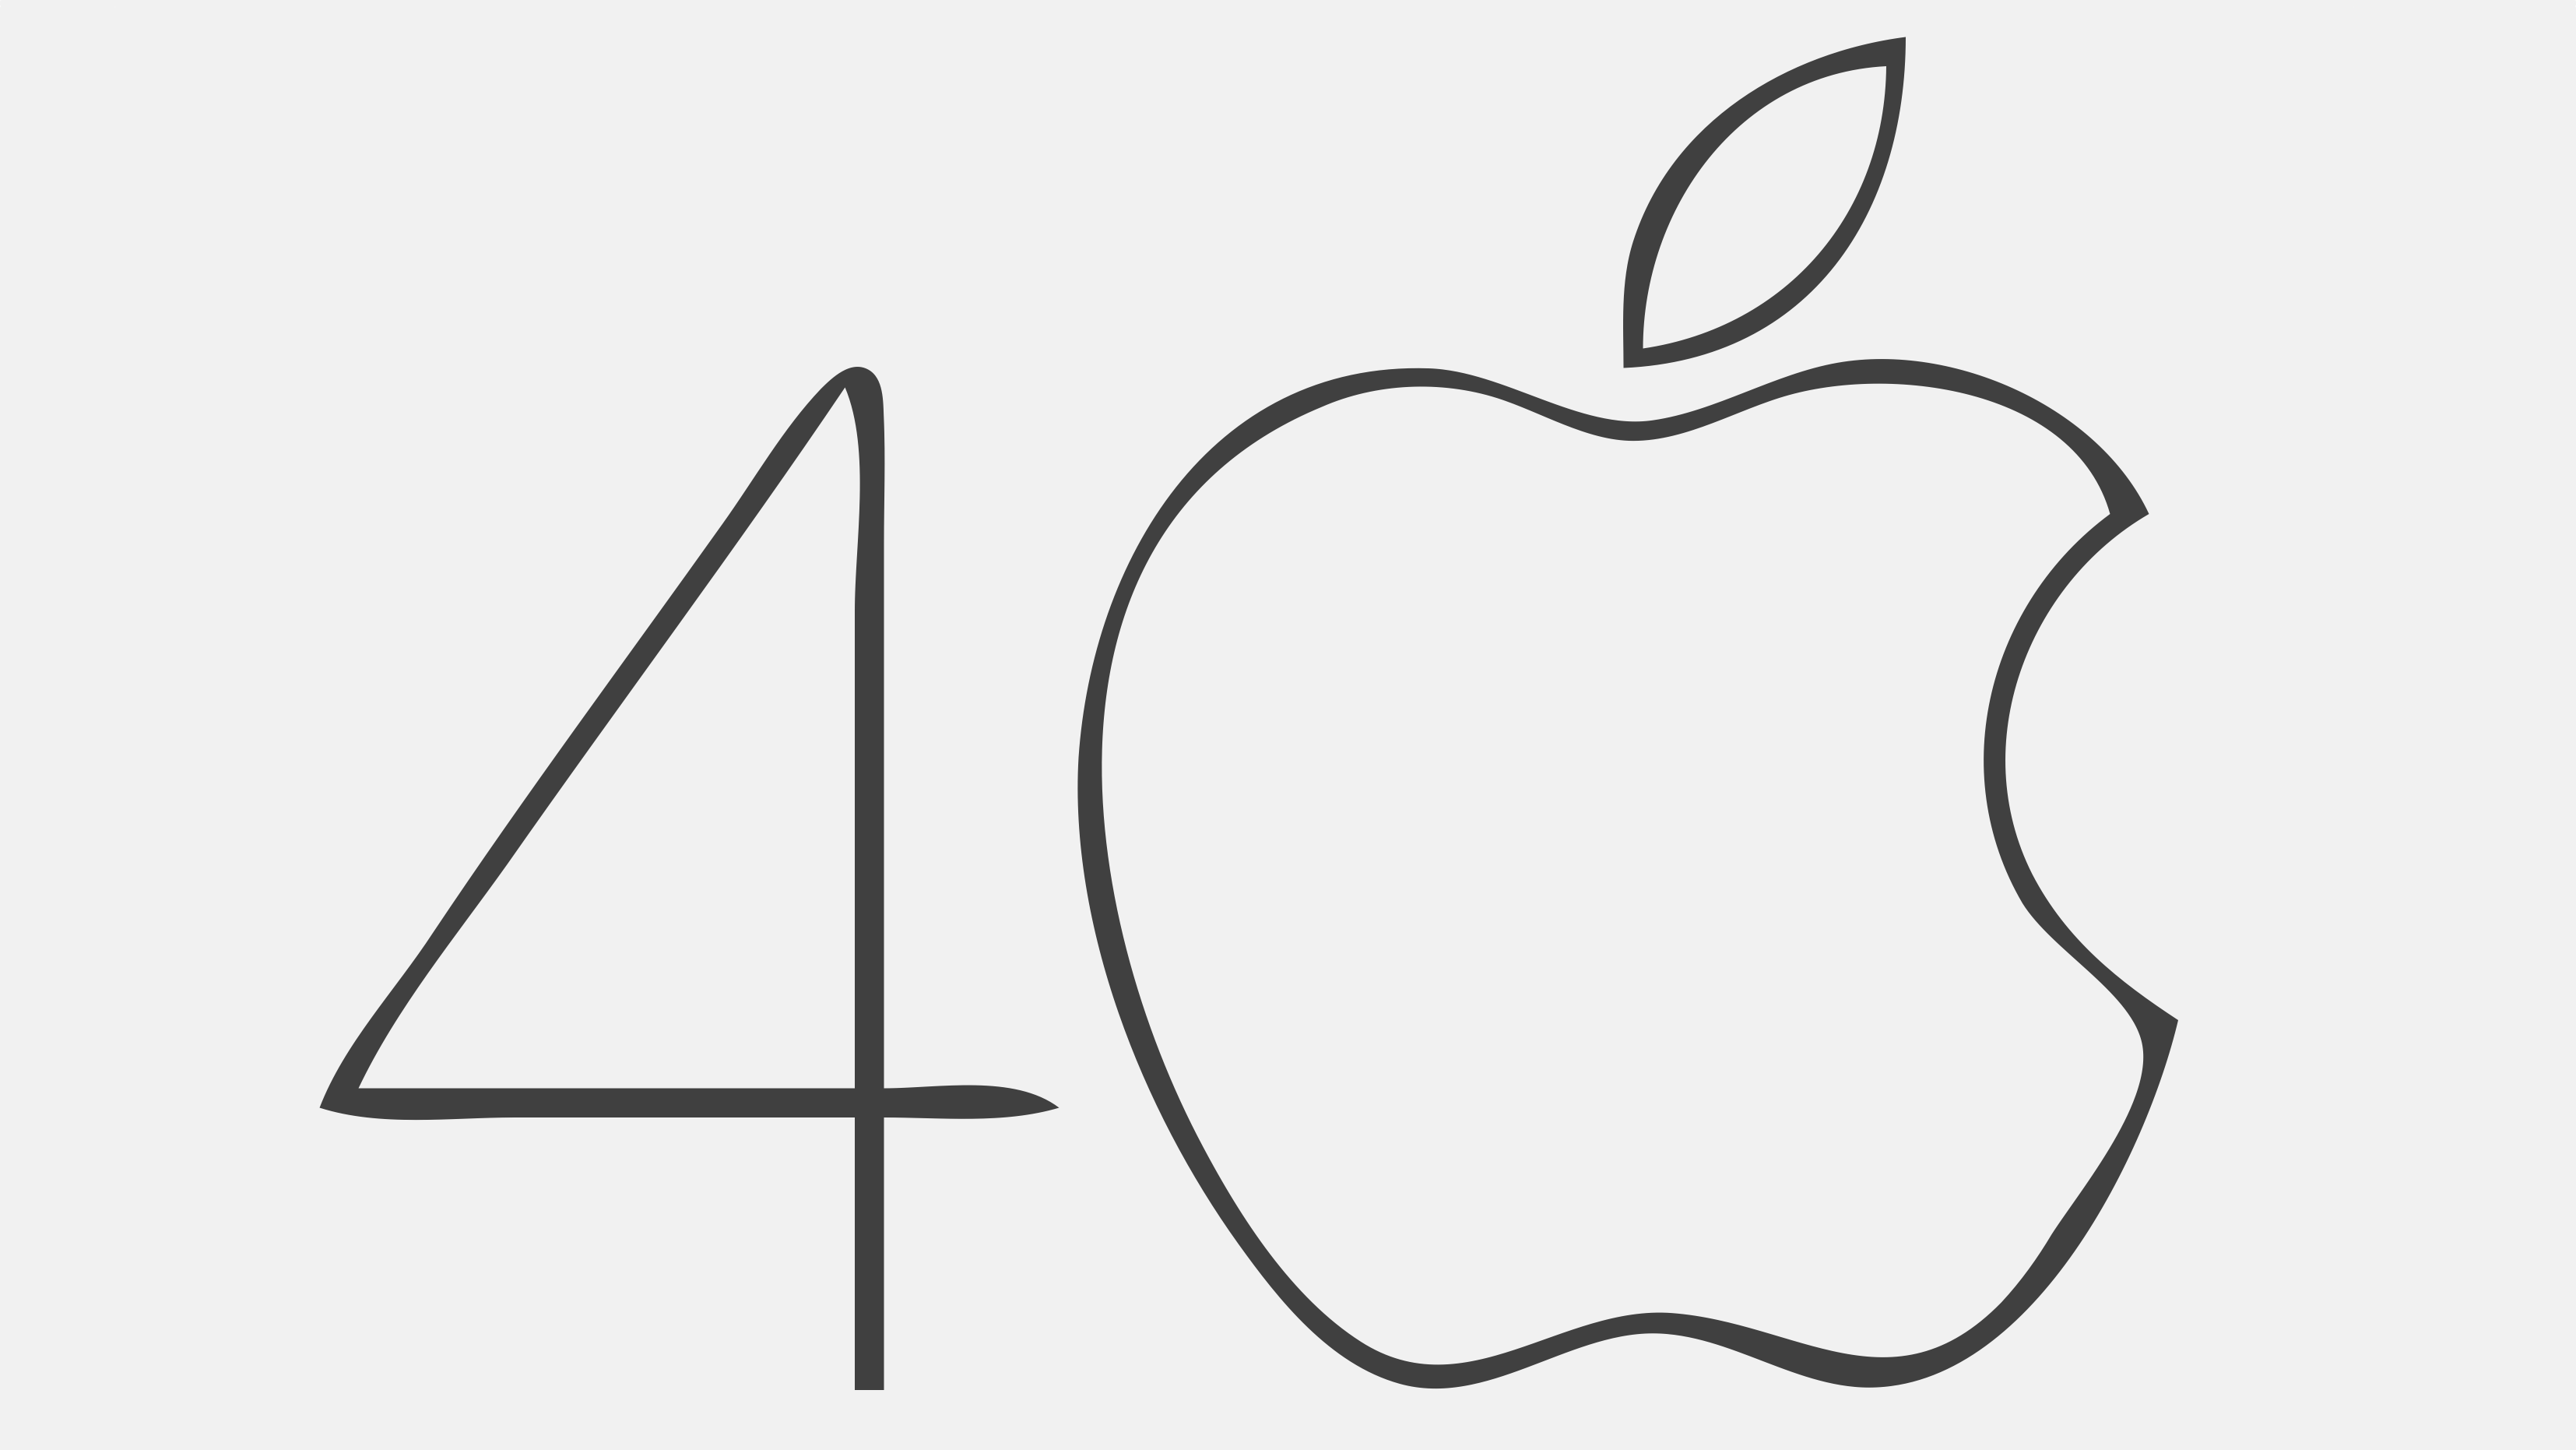 Apple has devoted its fortieth anniversary themed playlist in Apple Music